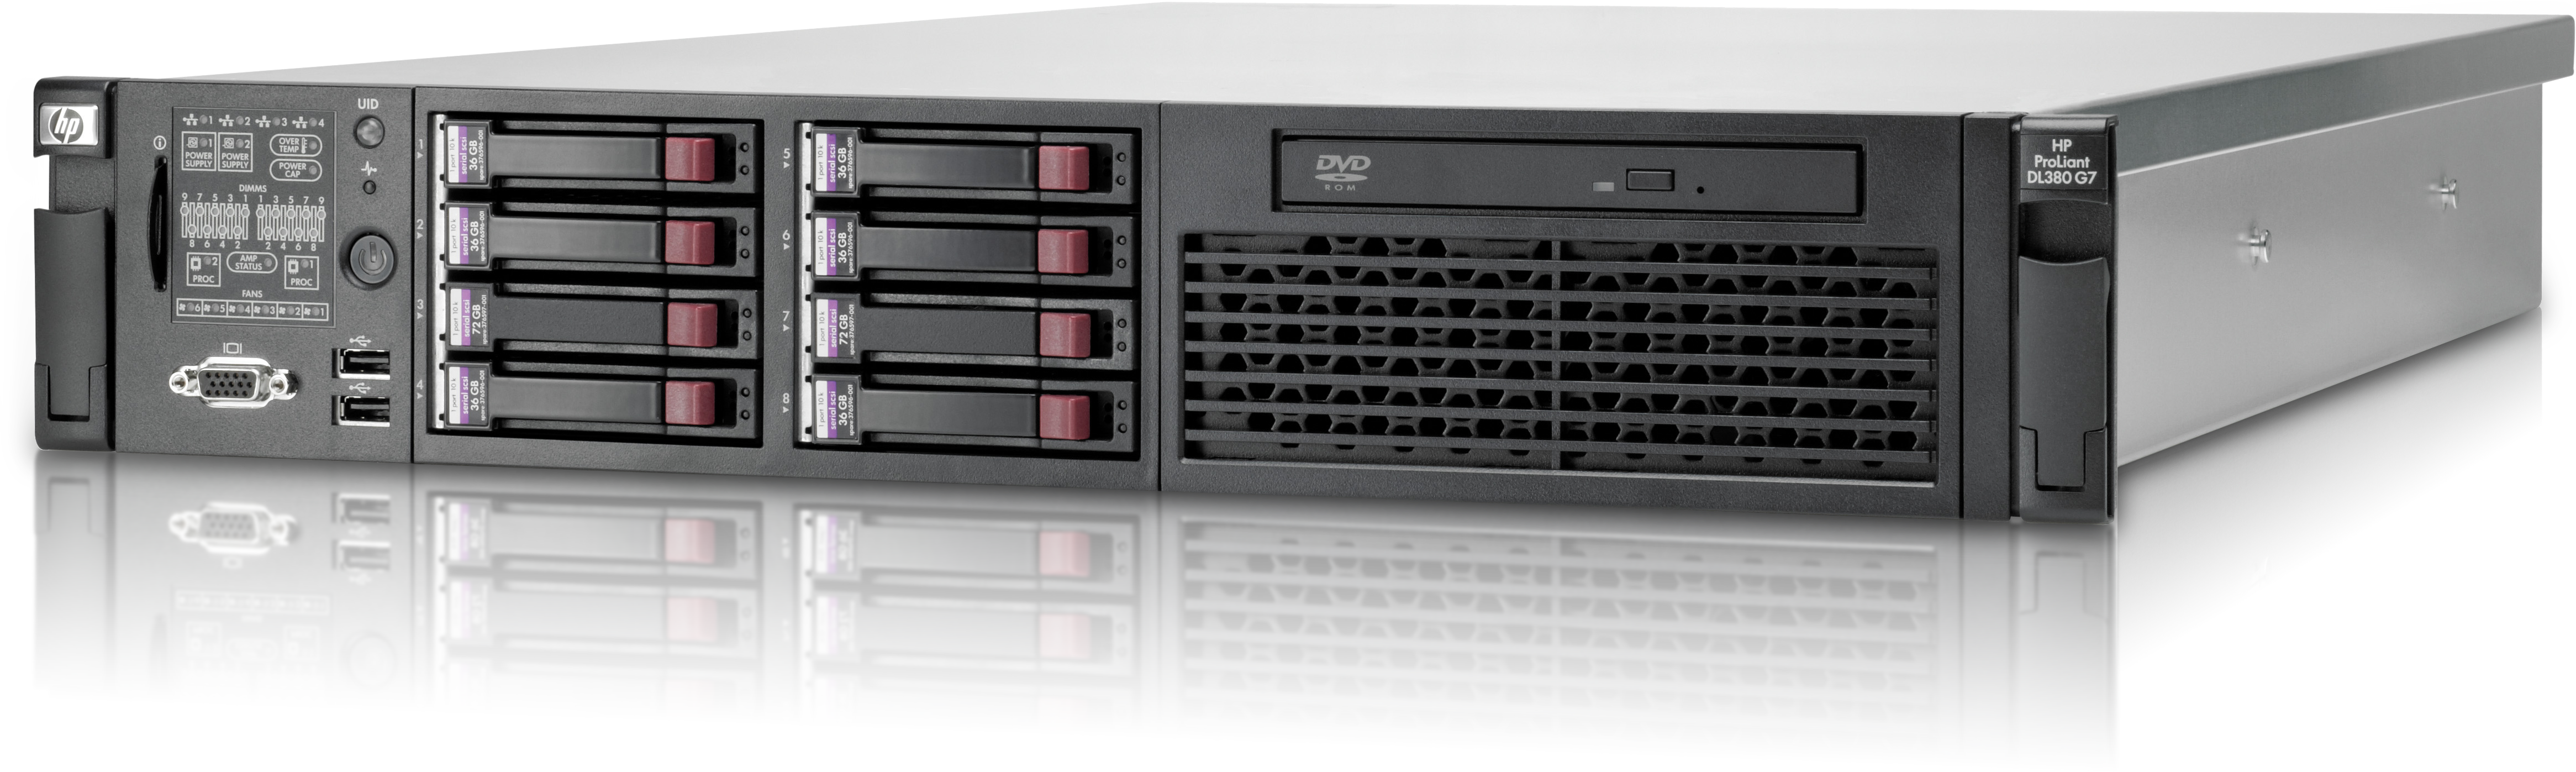 HP DL380p Gen8 Rackmount Servers